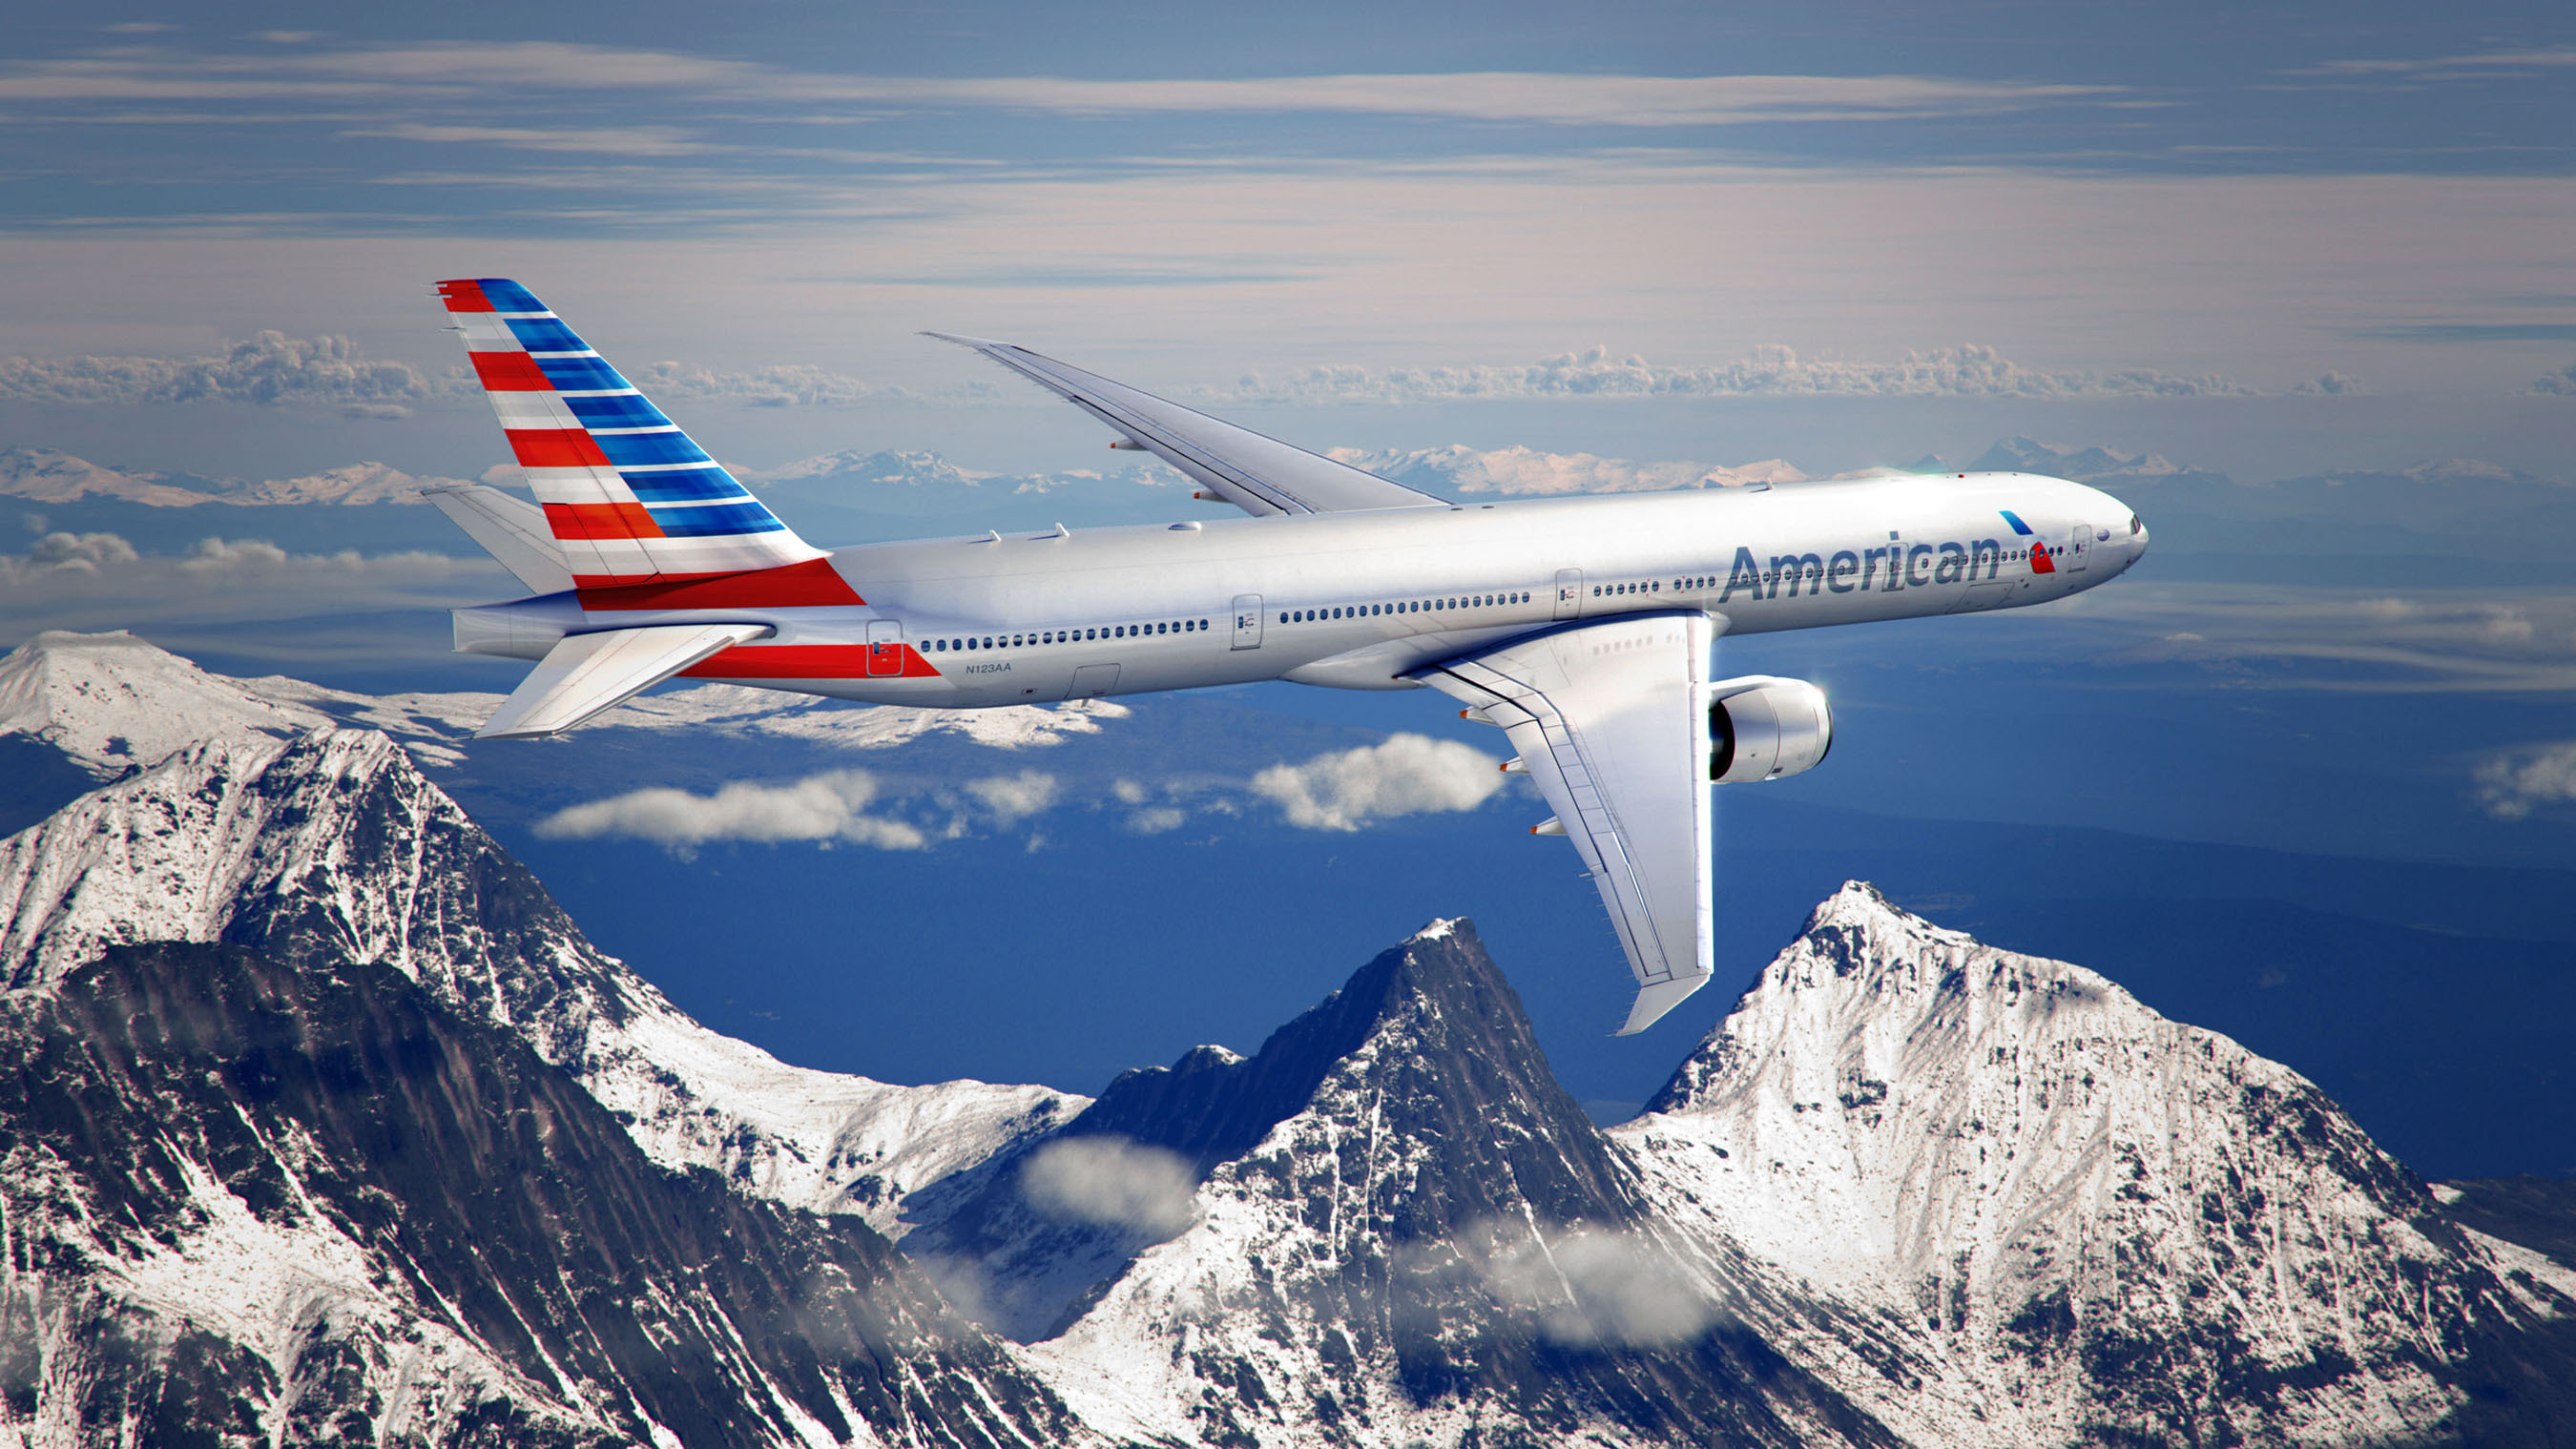 American's New Livery